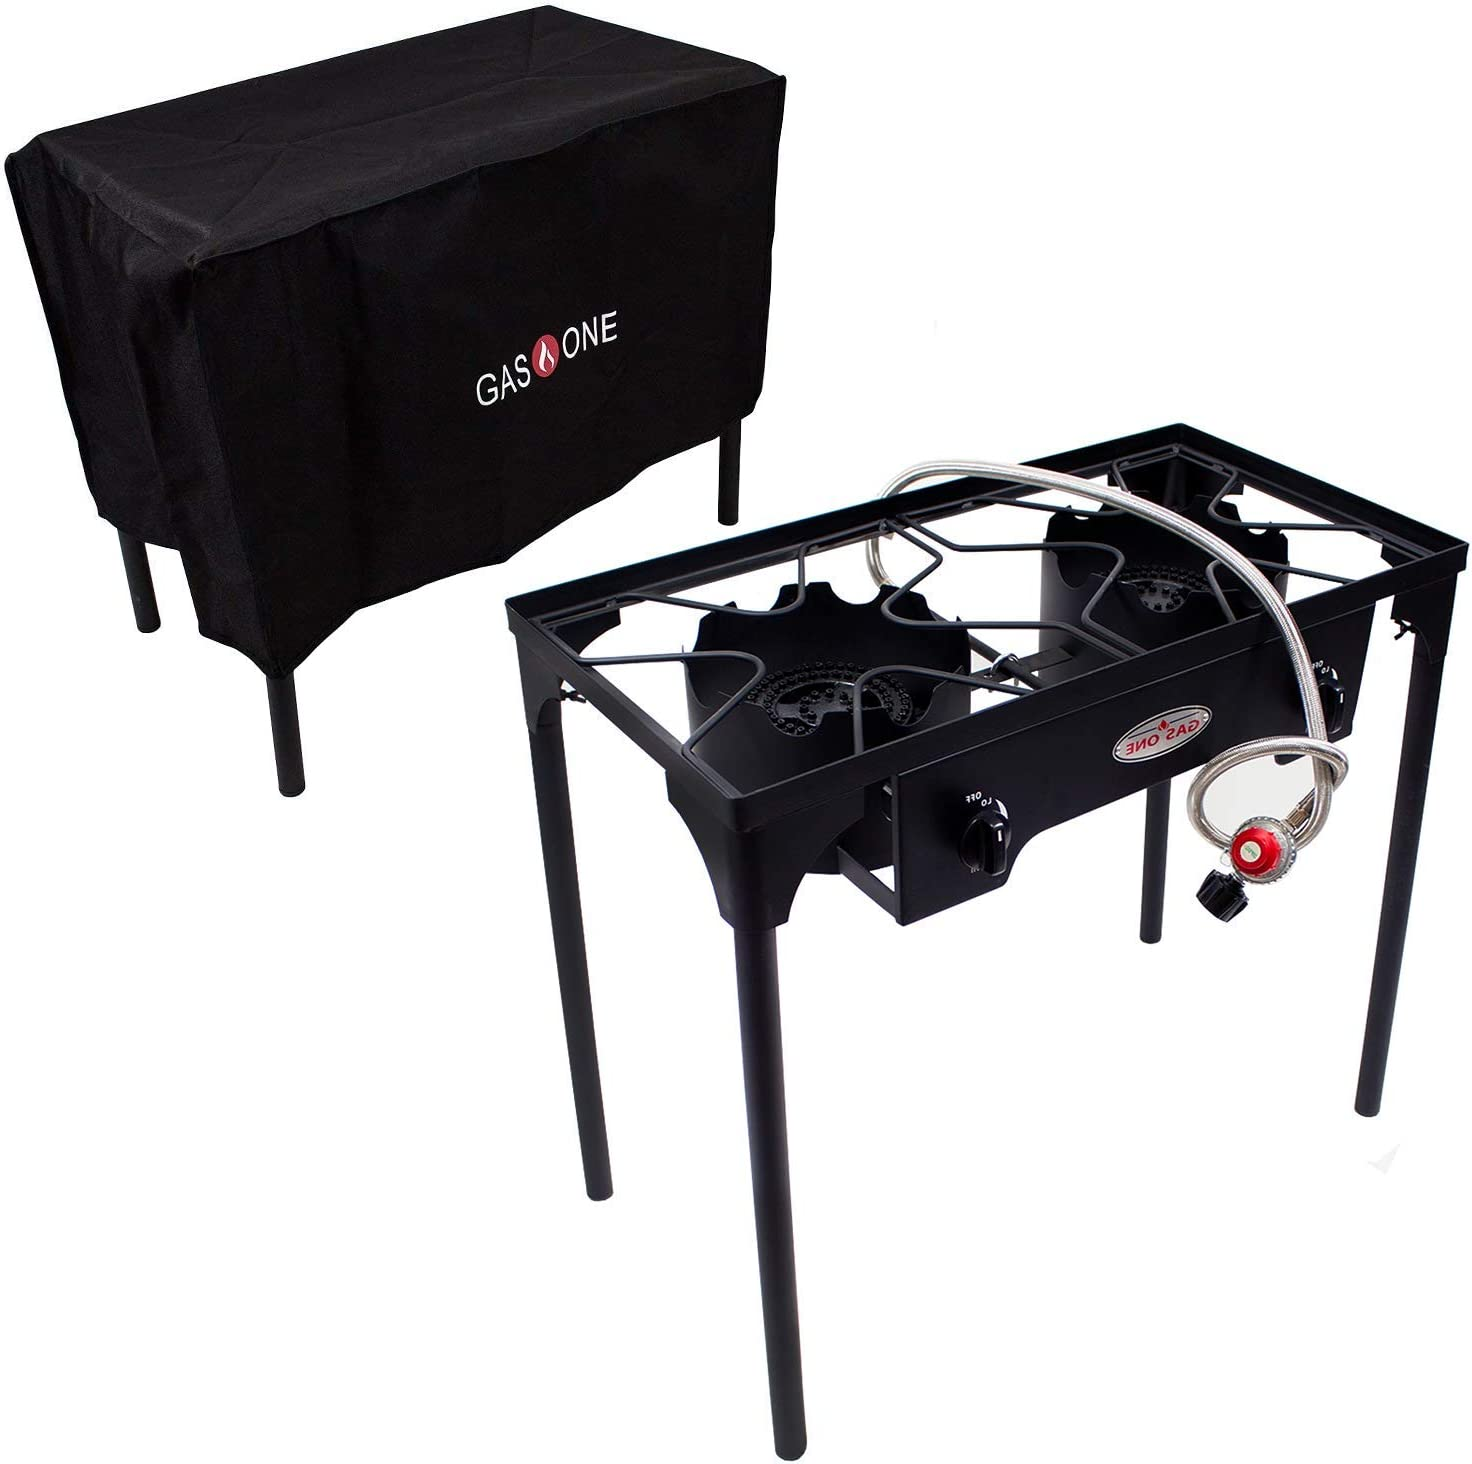 GasOne B-5000+50450 Burner & Cover 2 Burner Gas Stove Outdoor Propane, 30.75 x 15.75 x 18.5 inches, Black